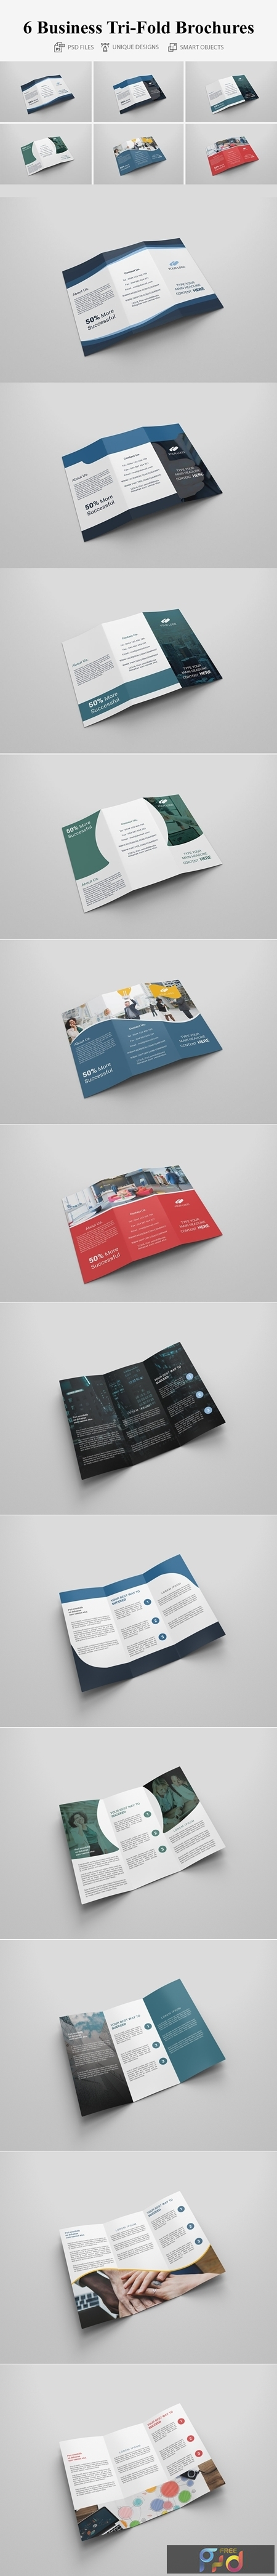 6 Business Tri-fold Brochures 4160628 1